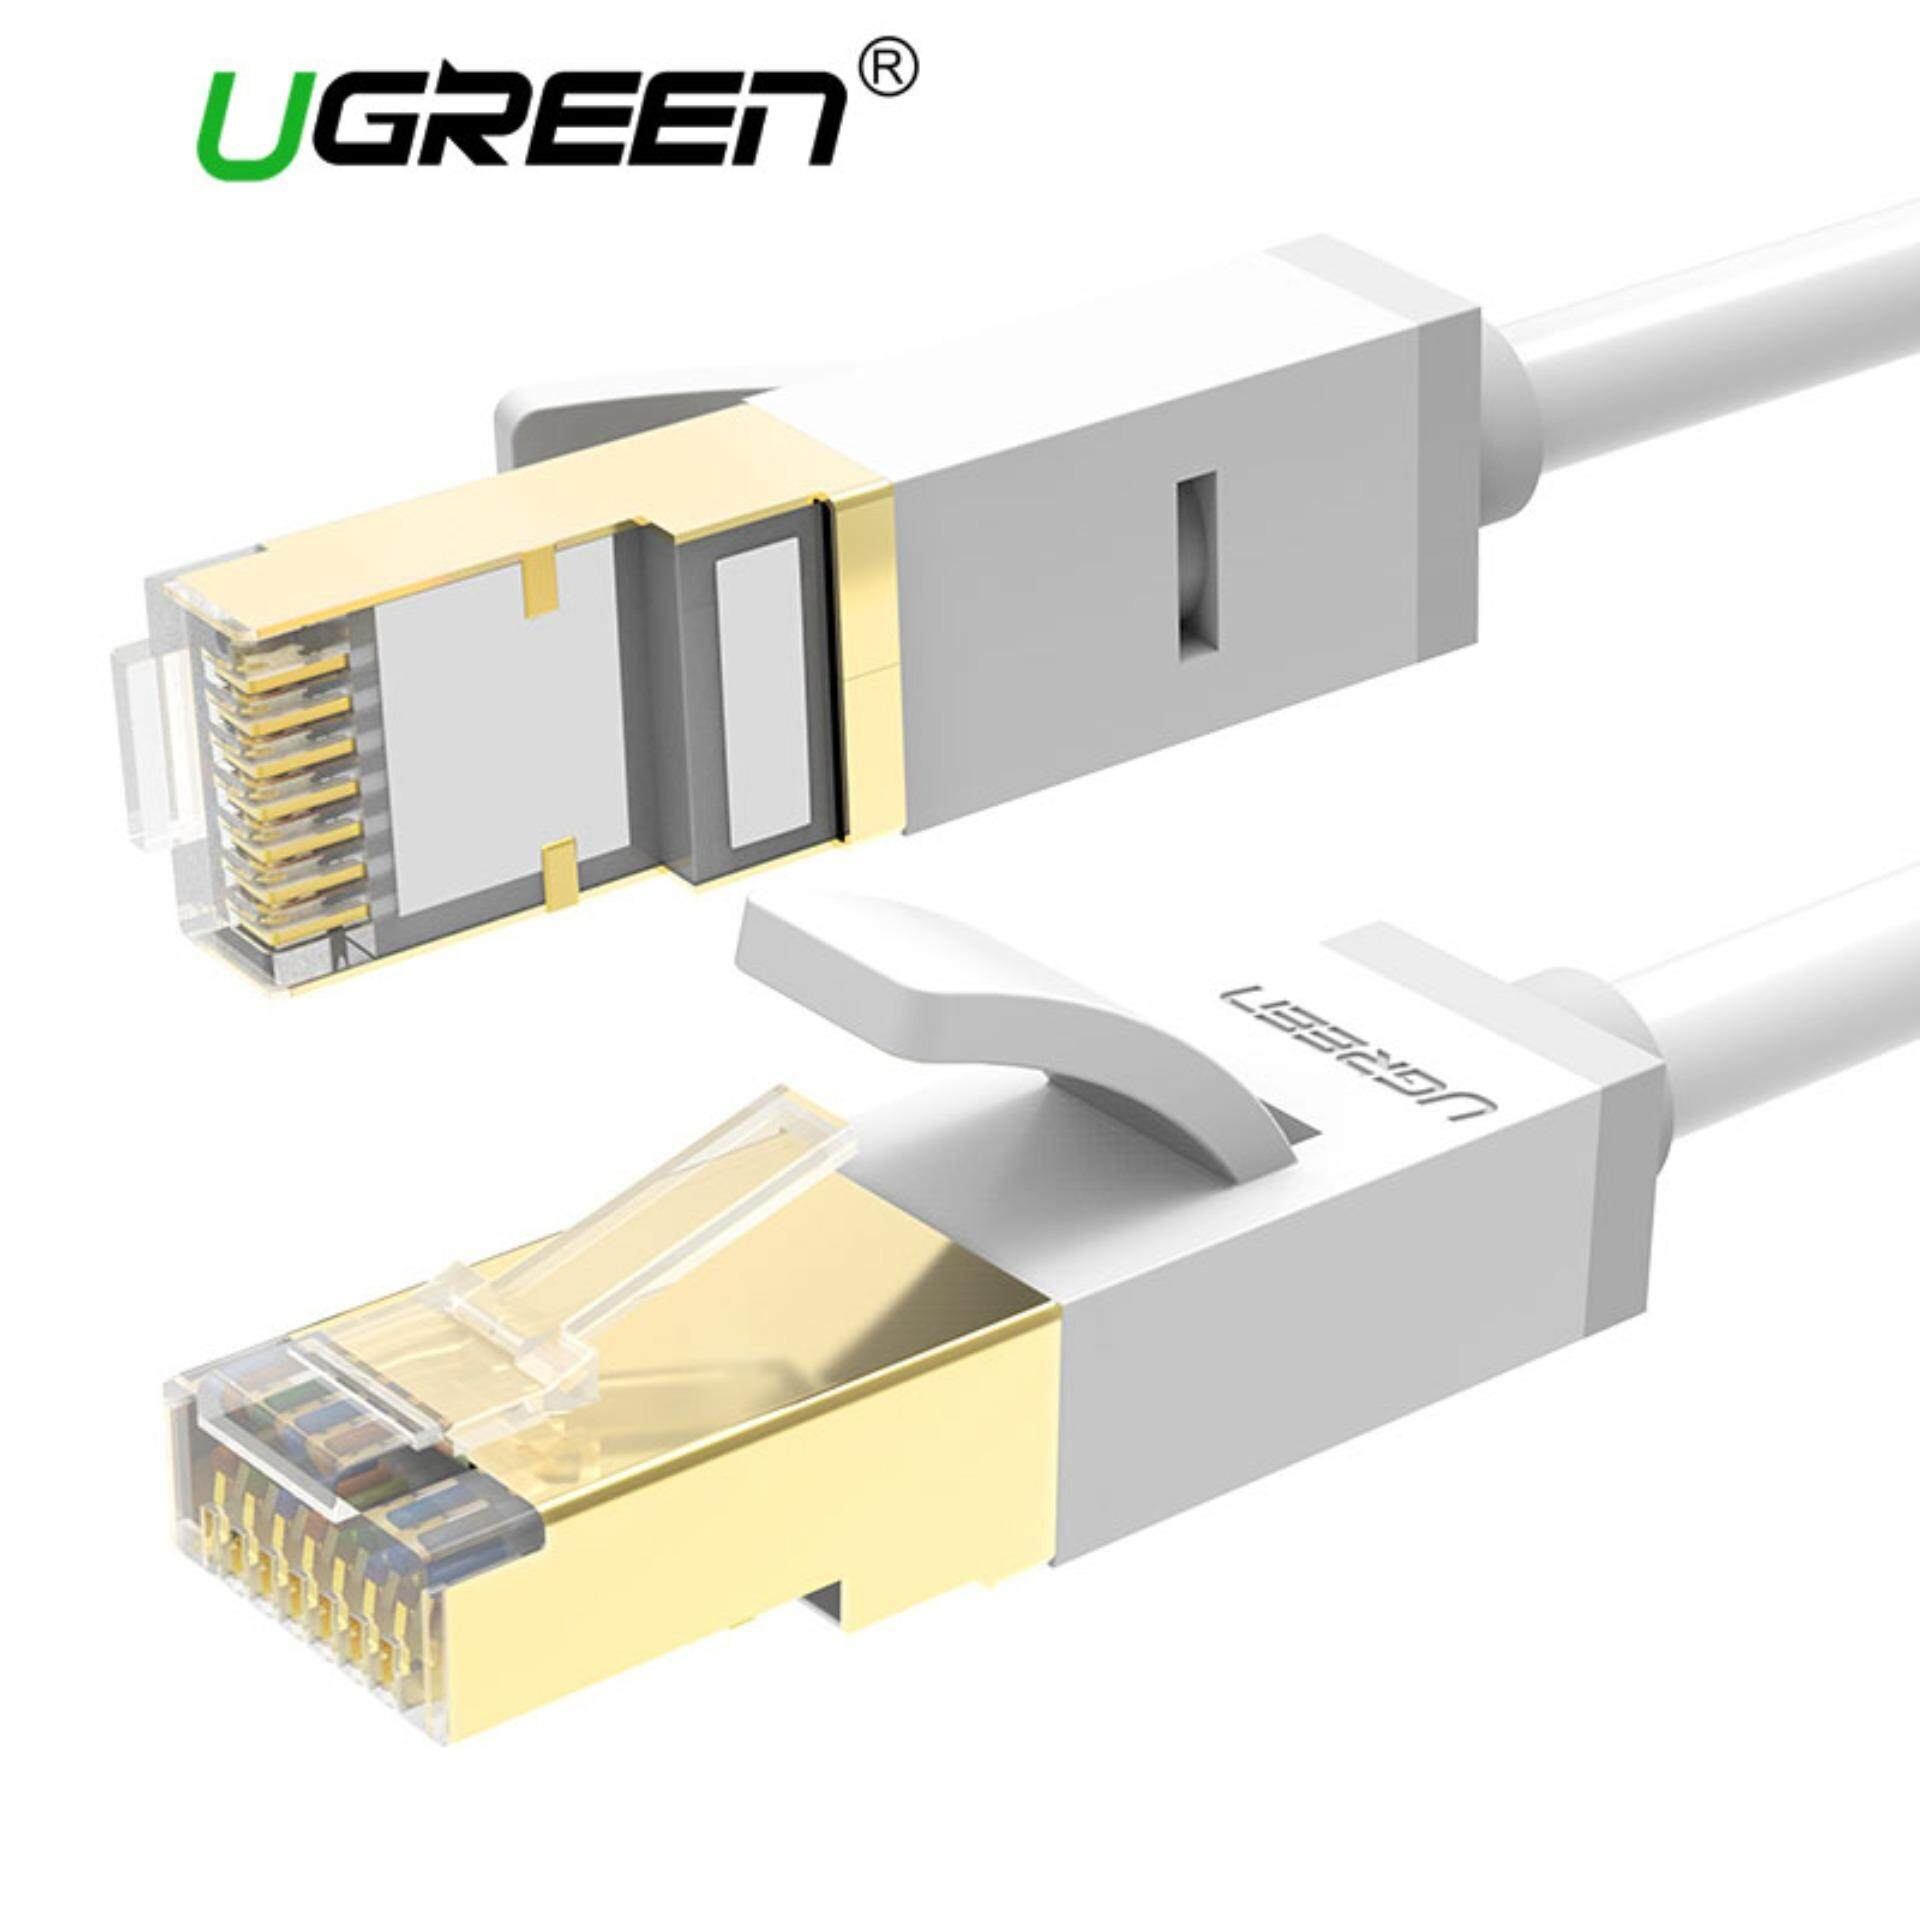 Computer Laptop Ethernet Cables For The Best Prices In Malaysia Kabel Data Lan Stp Ftp Outdoor Cat 5e Amp 25 Meter Ugreen 15 Cable Cat7 10 Gigabit Rj45 Network 600mhz Wire Cord